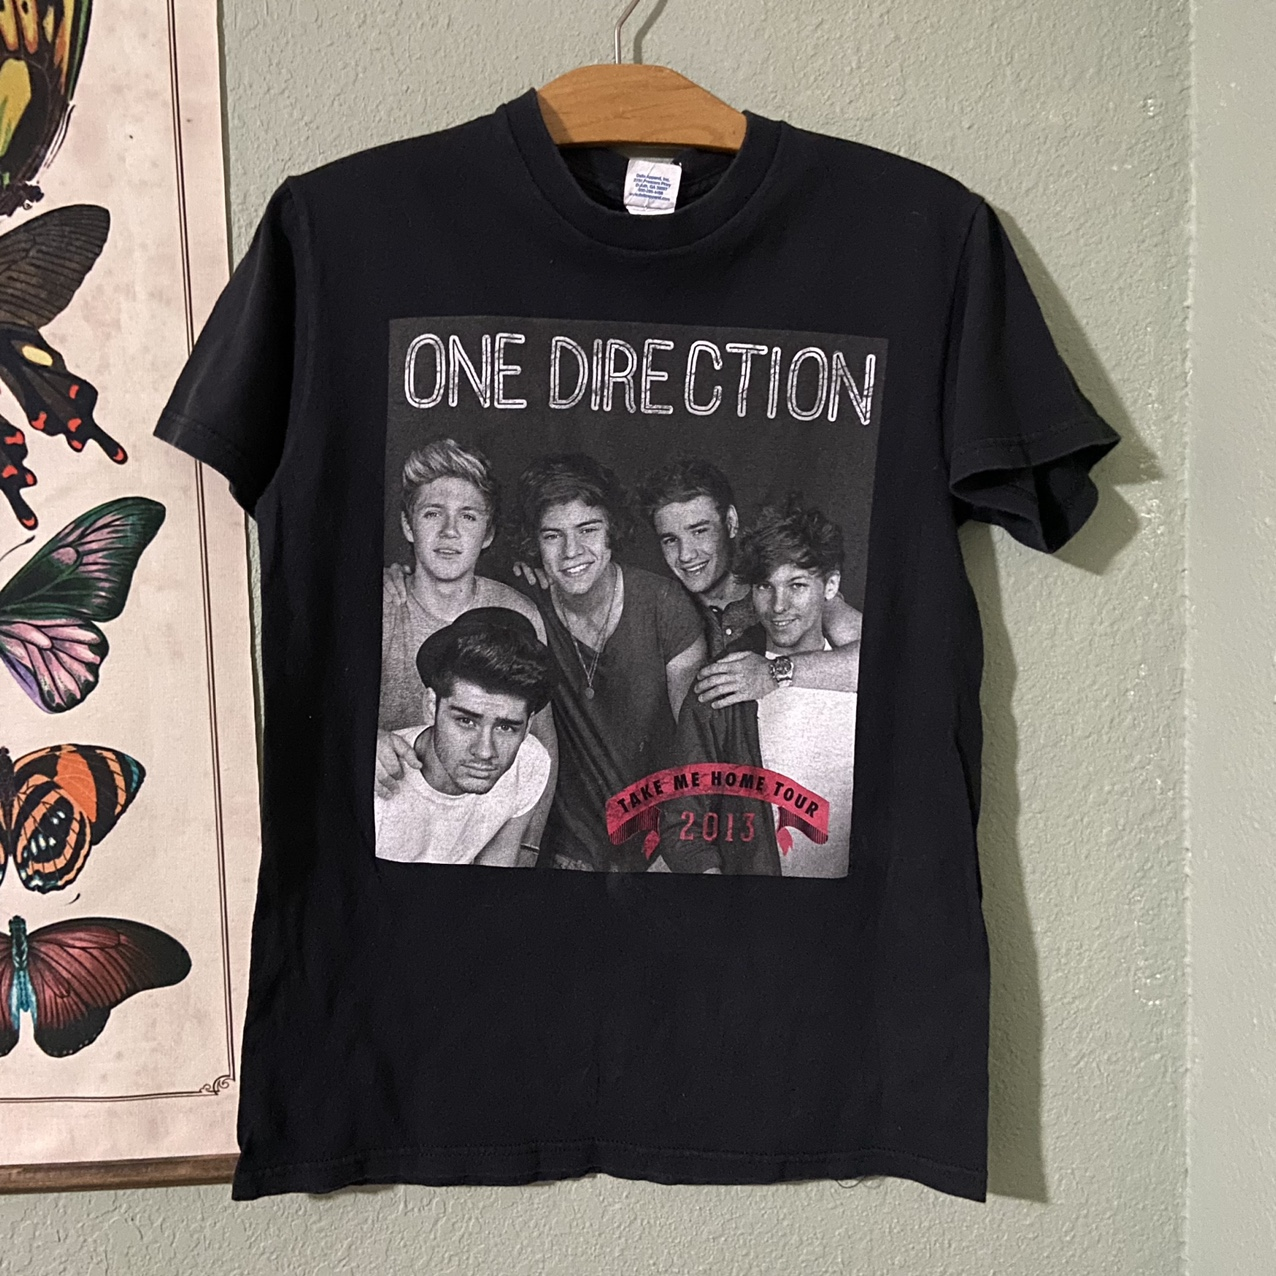 Product Image 1 - One Direction concert tee 2013 take